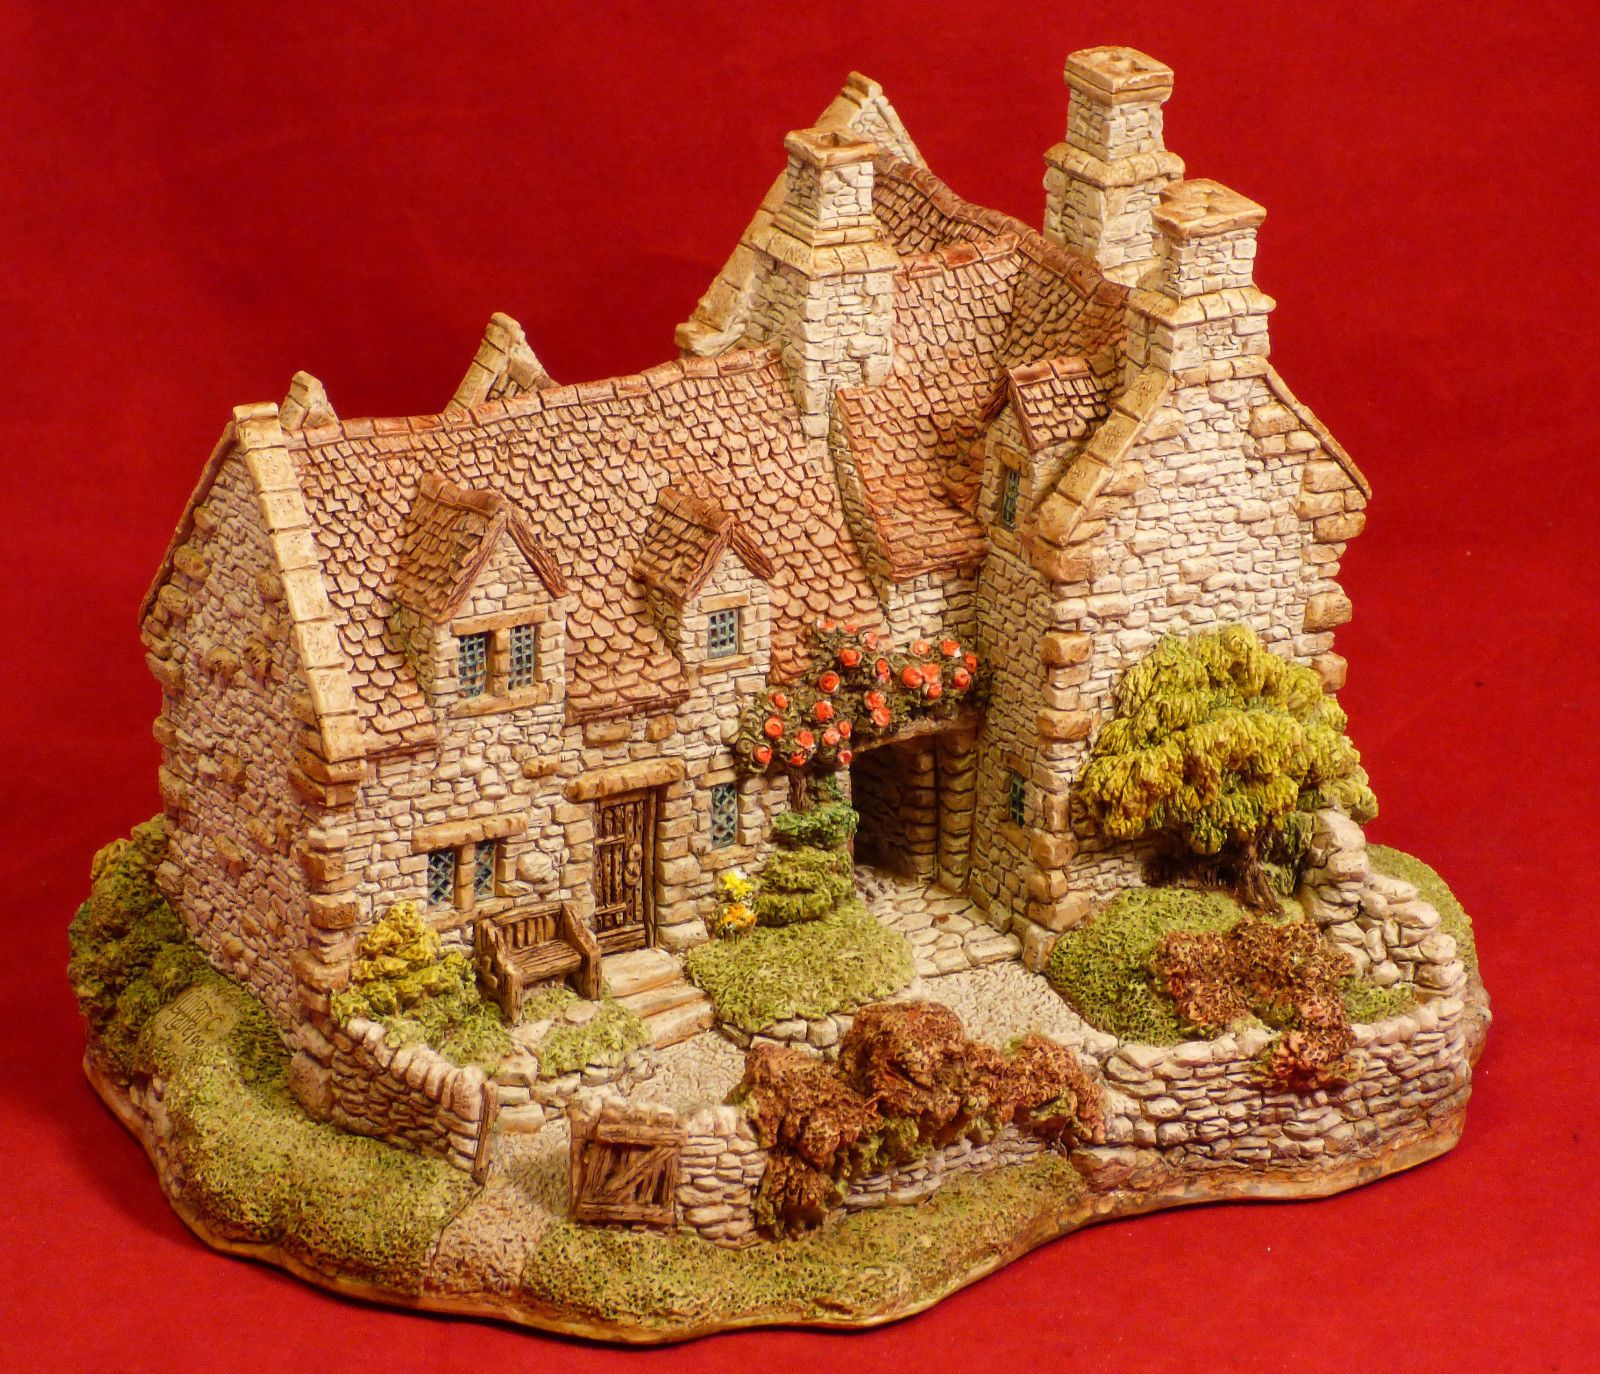 of create i dolls from to cottage pinterest cottages and on that different my dollhouse unstoppable doll craft dedicated images imaginations am love imagination best inspired greggs ideas haunted houses is miniatures miniature projects